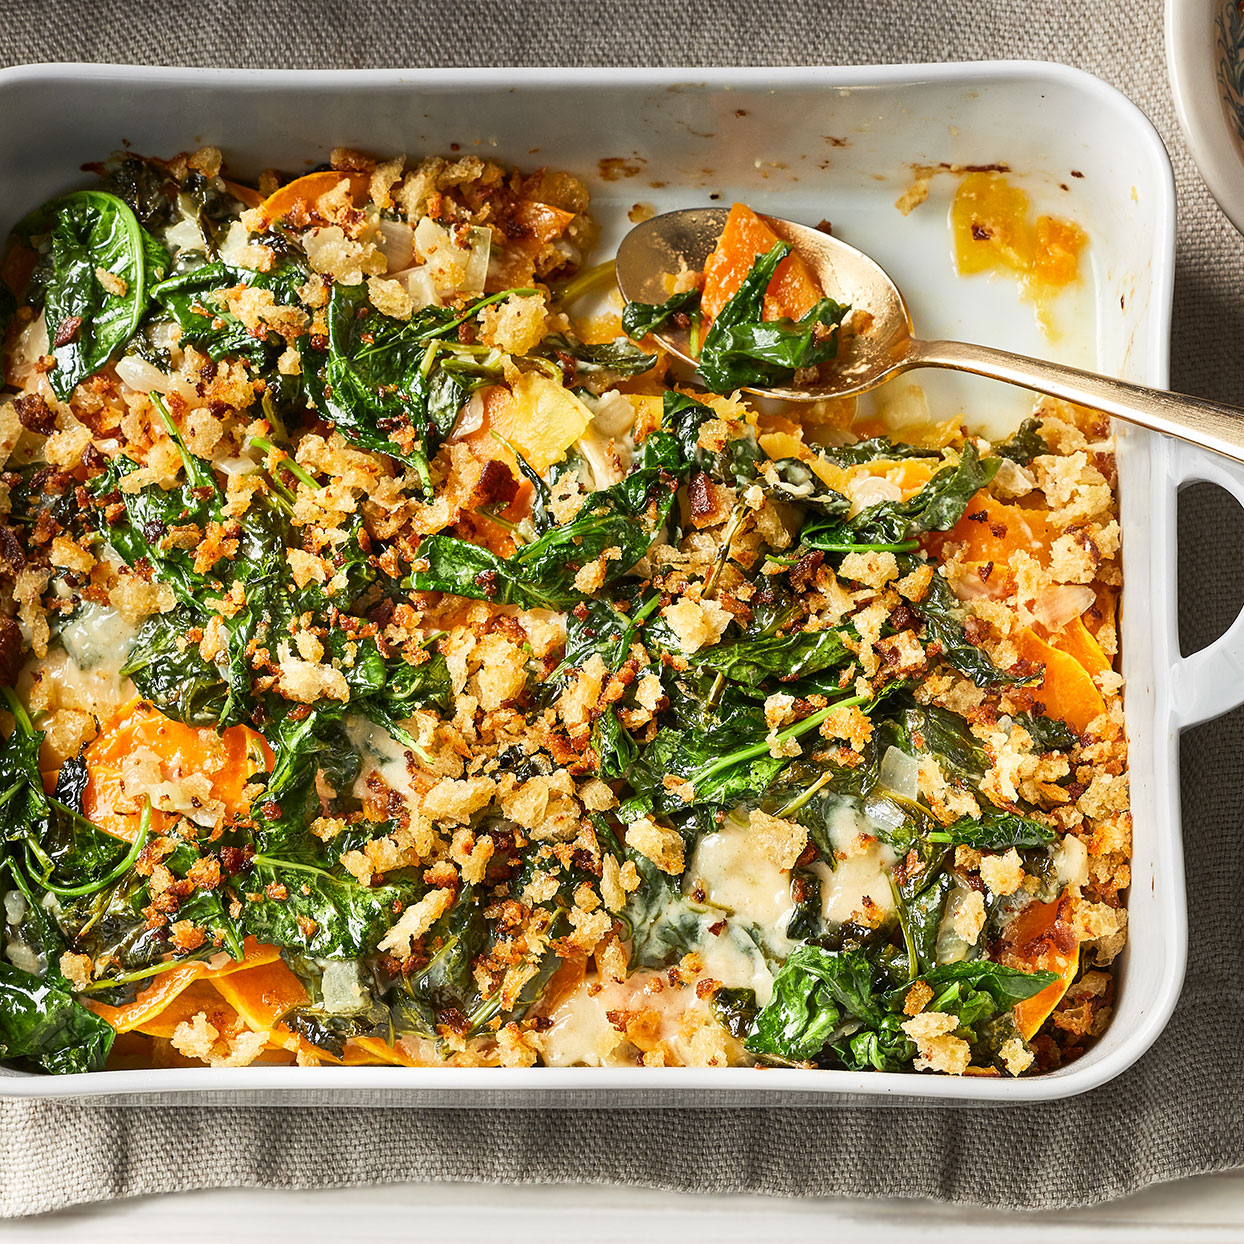 This colorful gratin dish livens up any holiday plate. Creamy melted Gruyère is comforting, while a blend of cumin, nutmeg, and cayenne pepper lends a warm, spicy note.